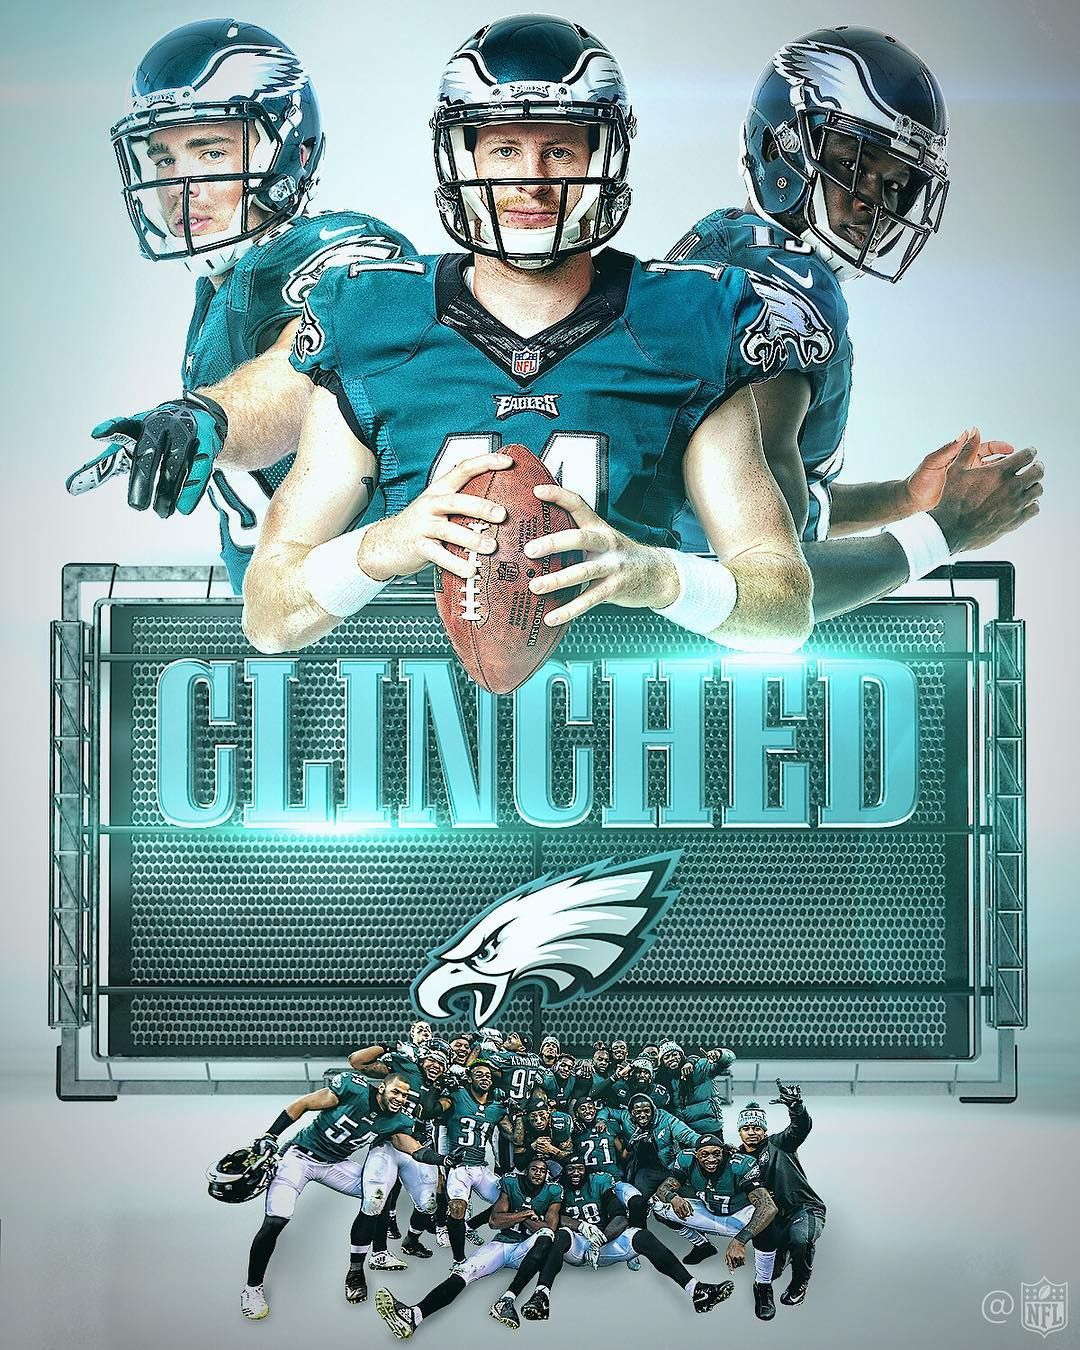 The Philadelphia Eagles Have Clinched The Nfc East And Are Heading To The Philadelphia Eagles Football Philadelphia Eagles Fans Eagles Football